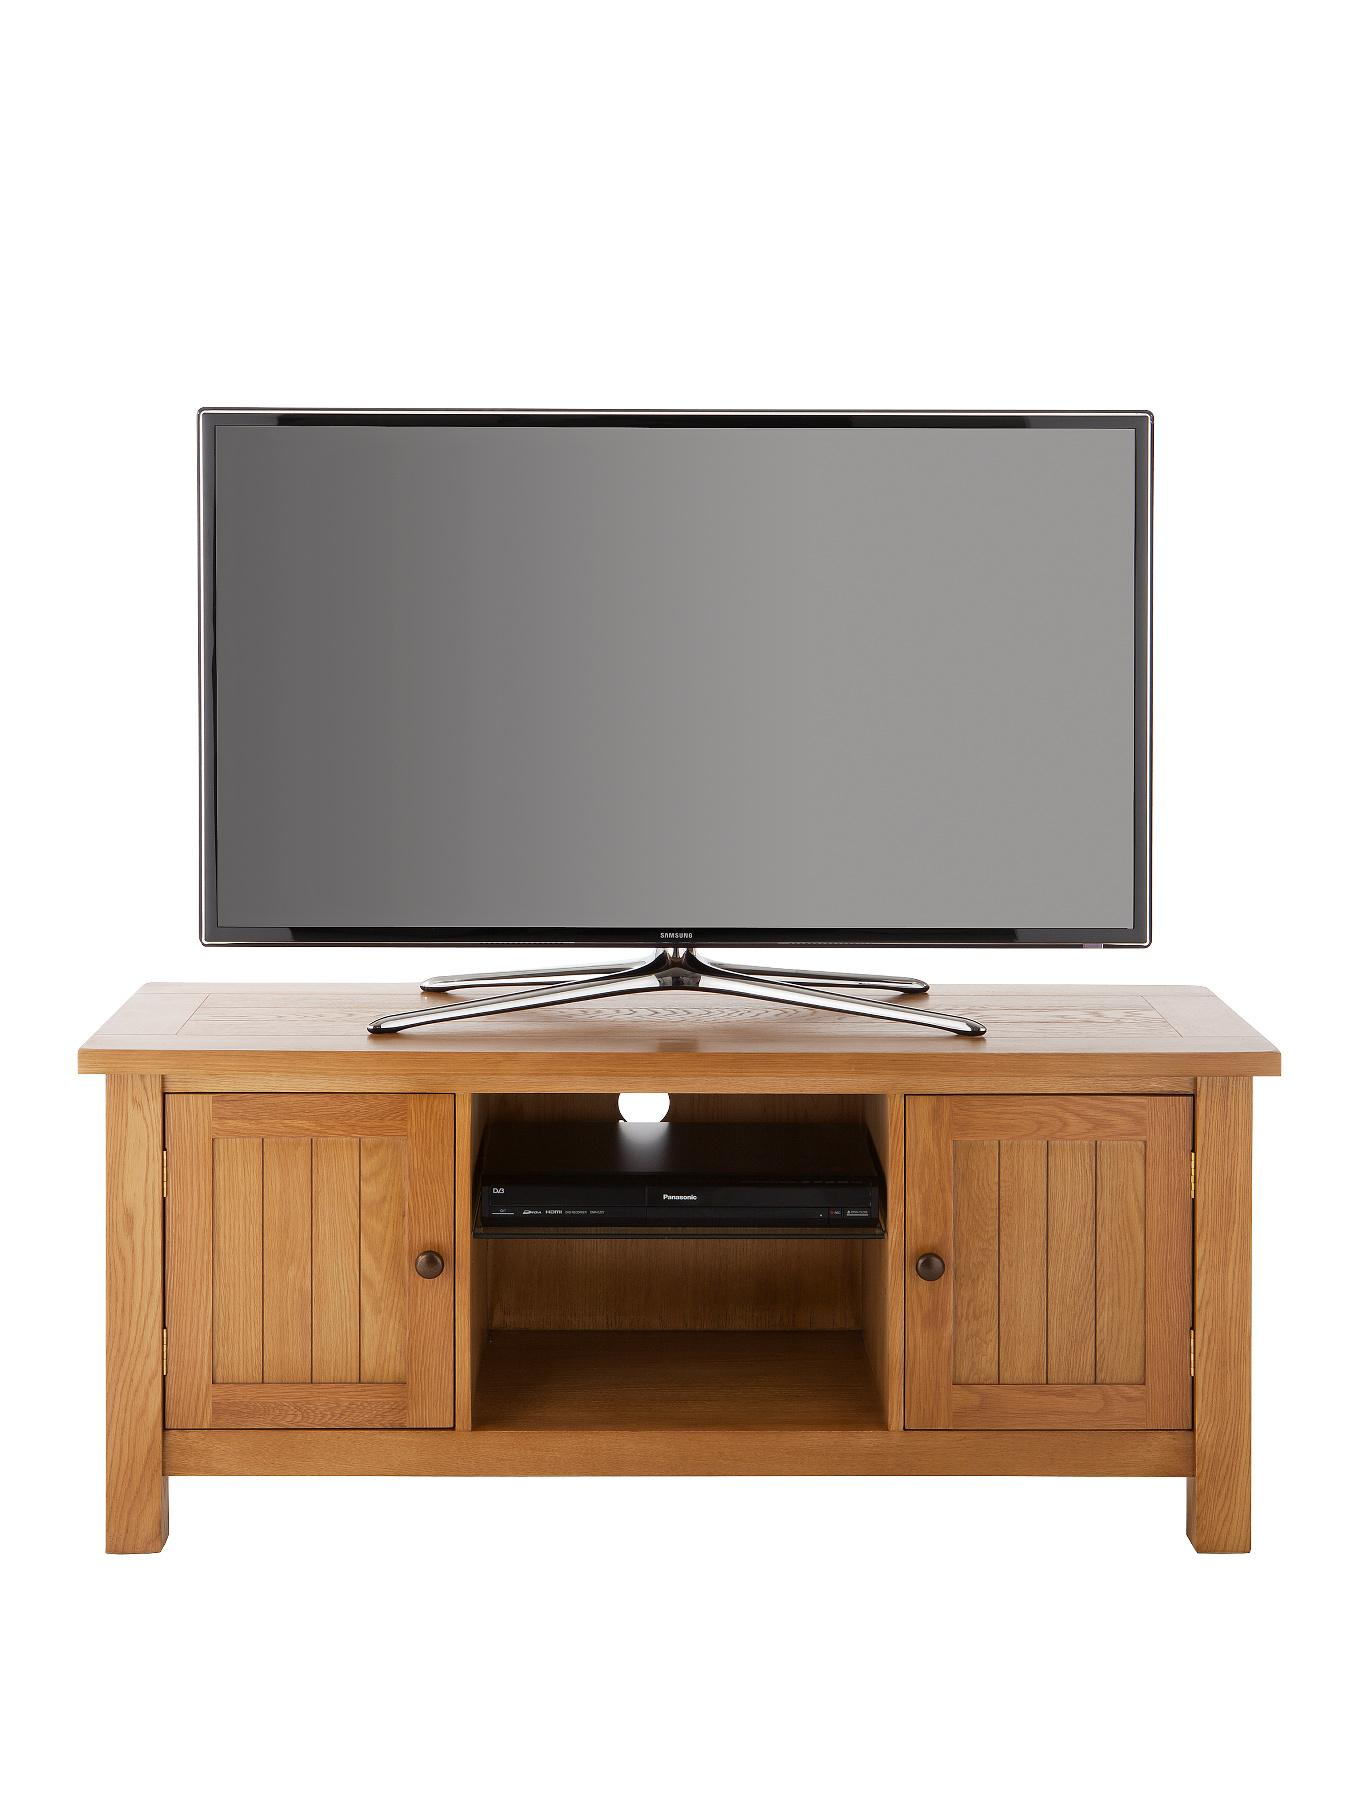 Balmoral Ready Assembled TV Cabinet (54 inch)